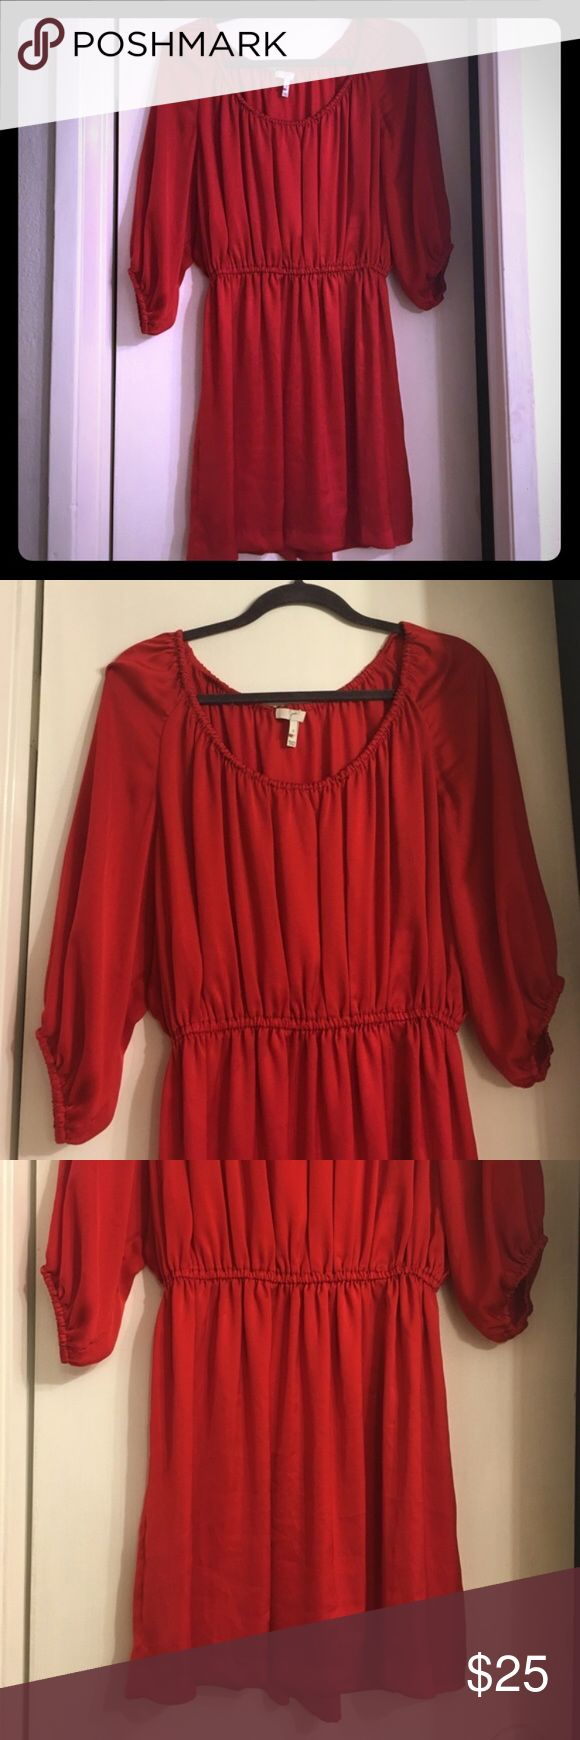 Joie dress Beautiful red dress. Gently worn. Great condition. Vibrant color. Perfect for spring and summer. Joie Dresses